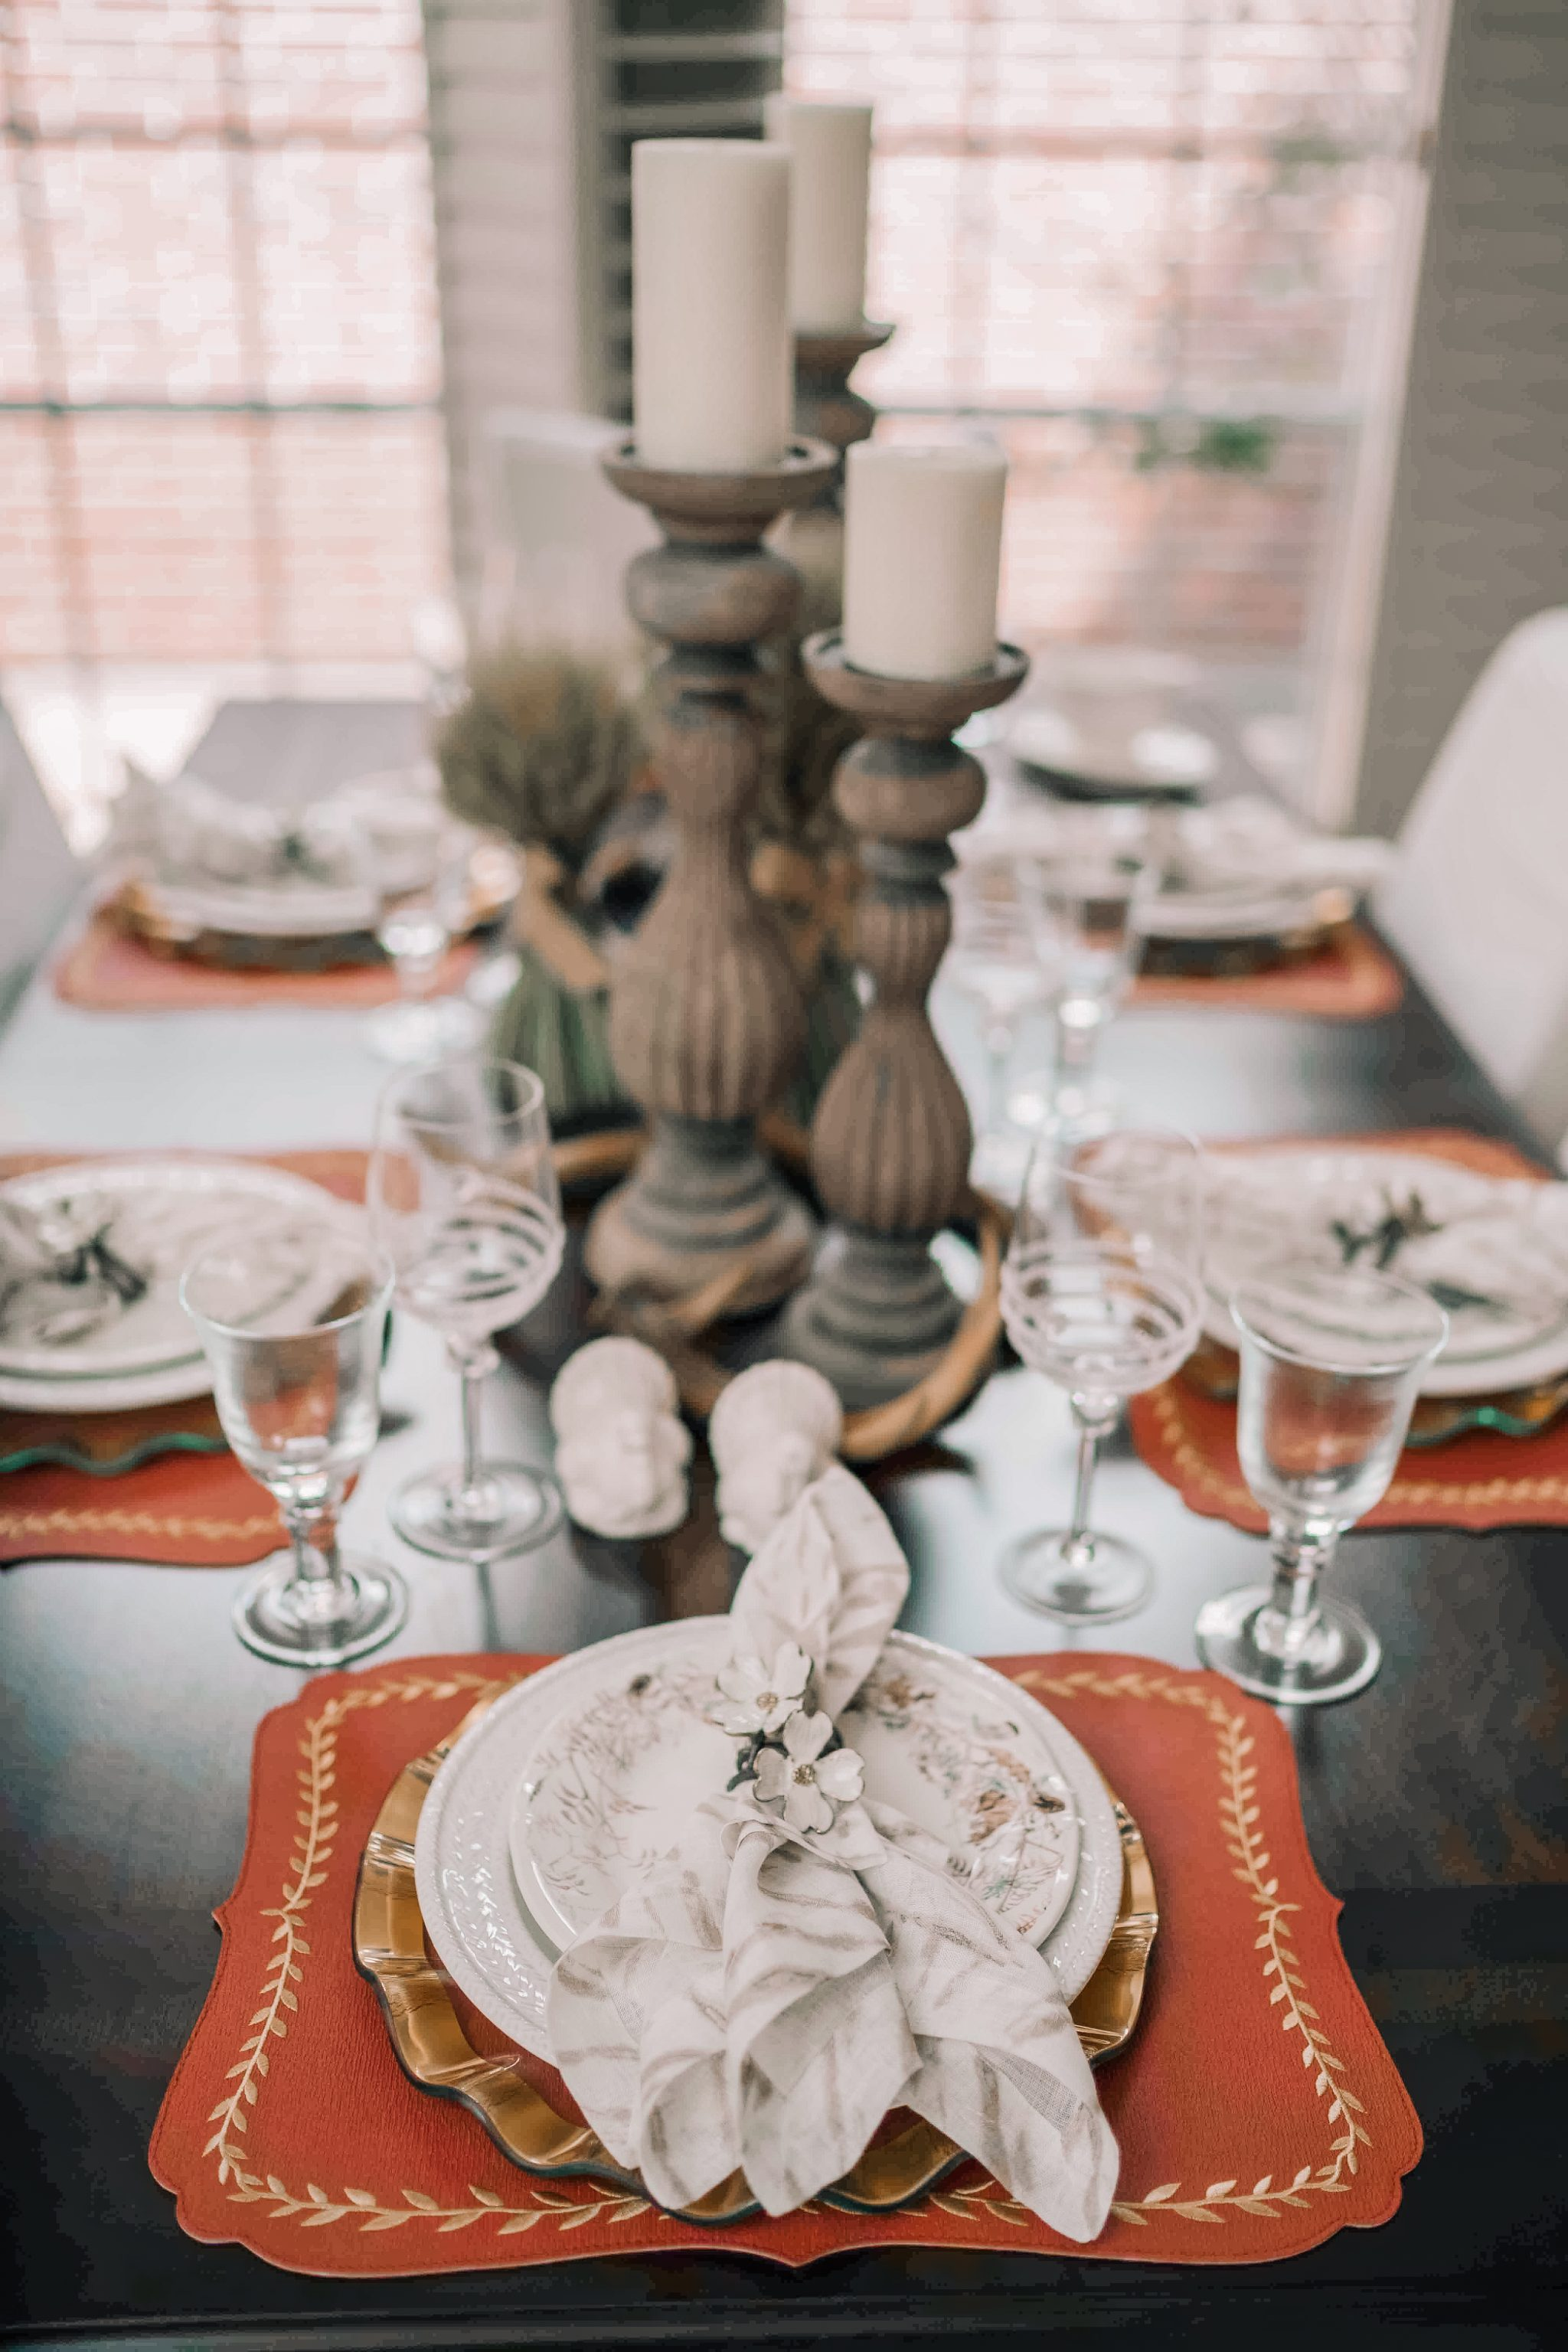 Carved wood candle holders as centerpieces